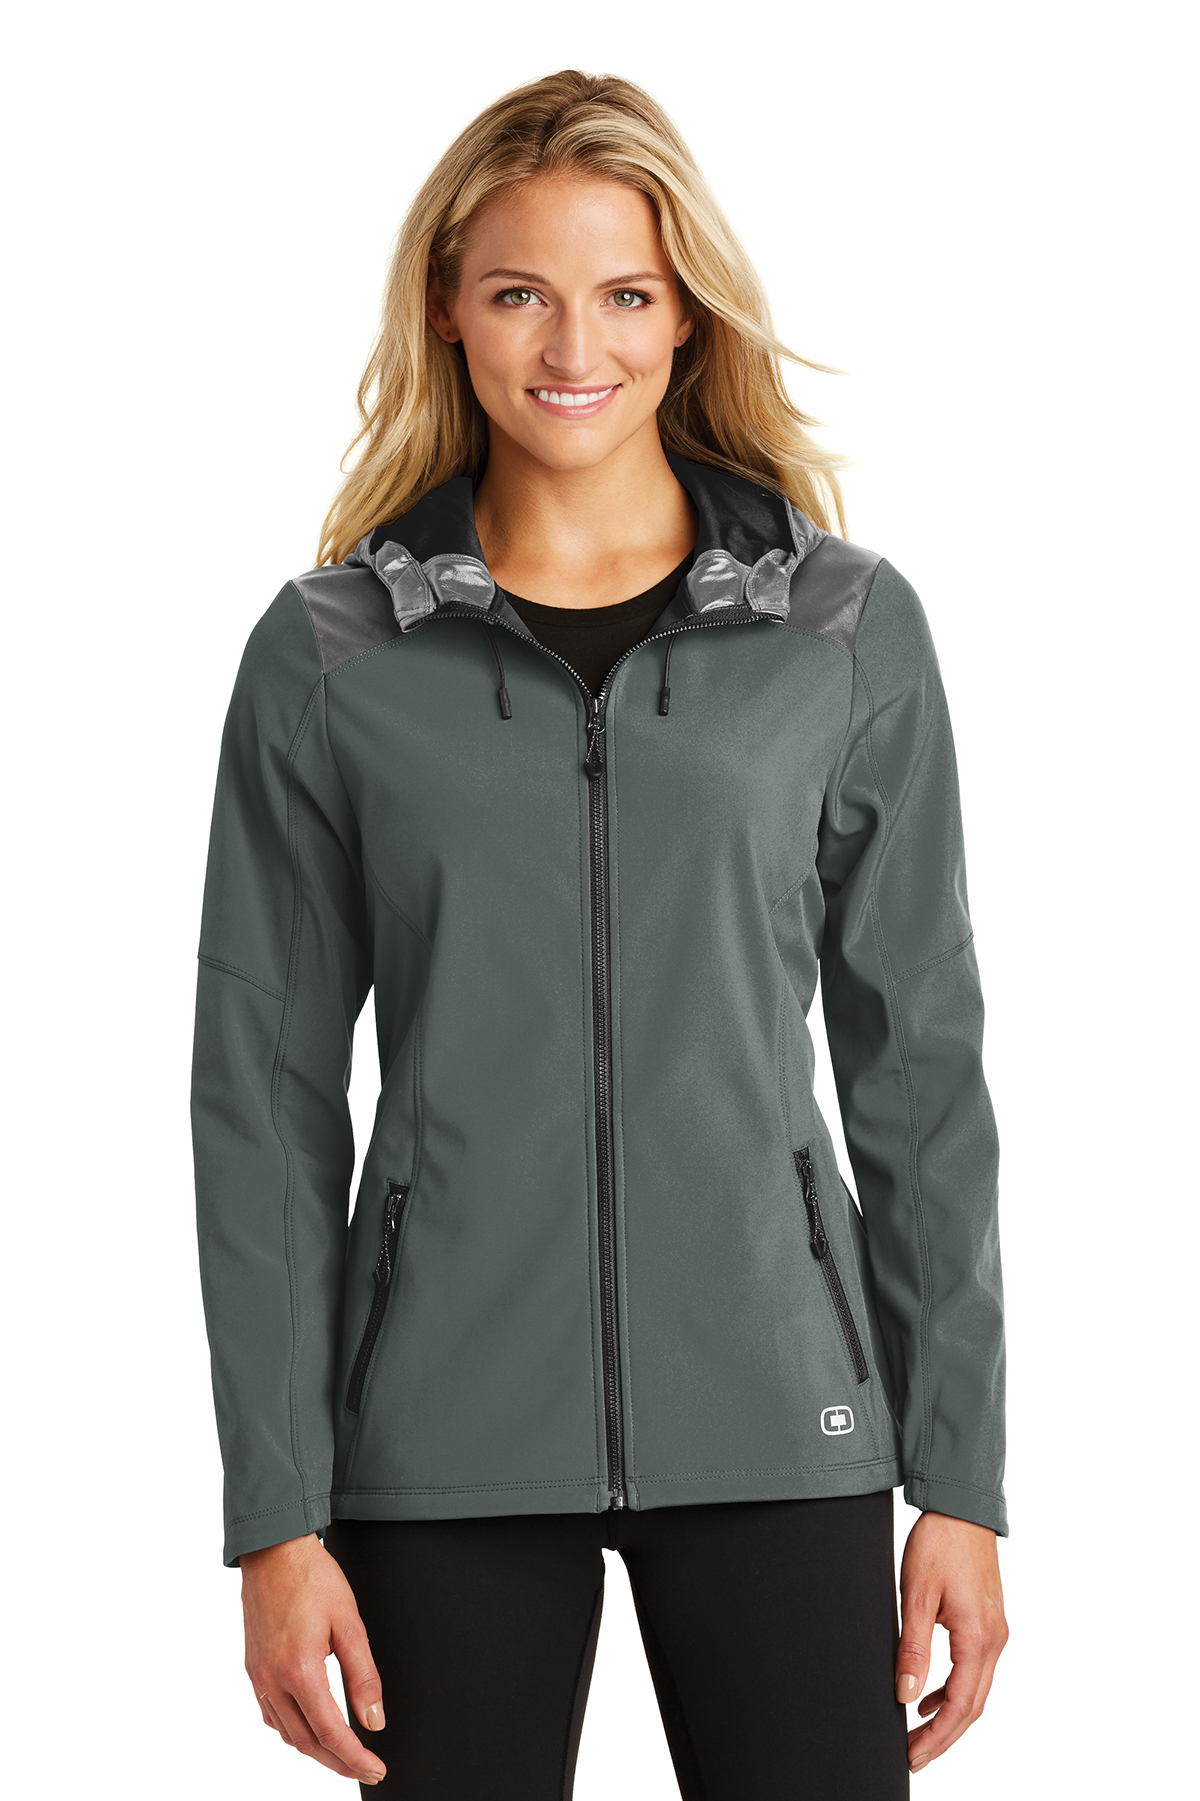 OGIO ENDURANCE LOE723 - Ladies Liquid Jacket